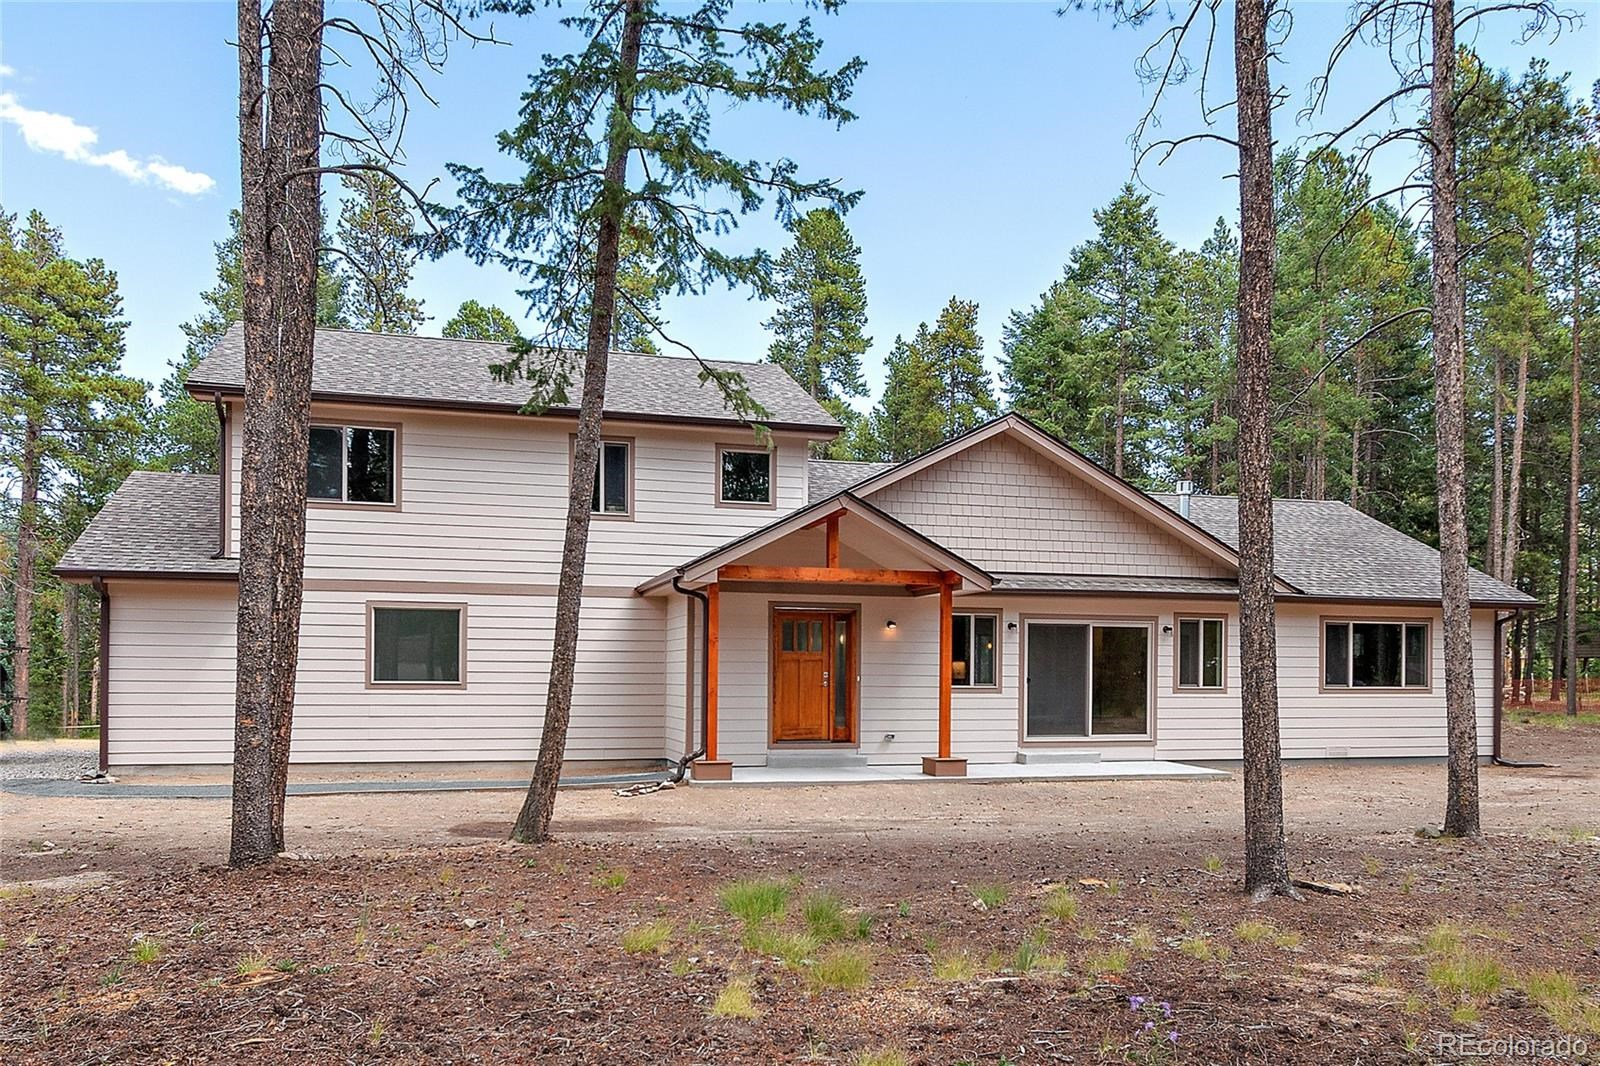 MLS# 3859300 - 1 - 10892 Barker Avenue, Conifer, CO 80433